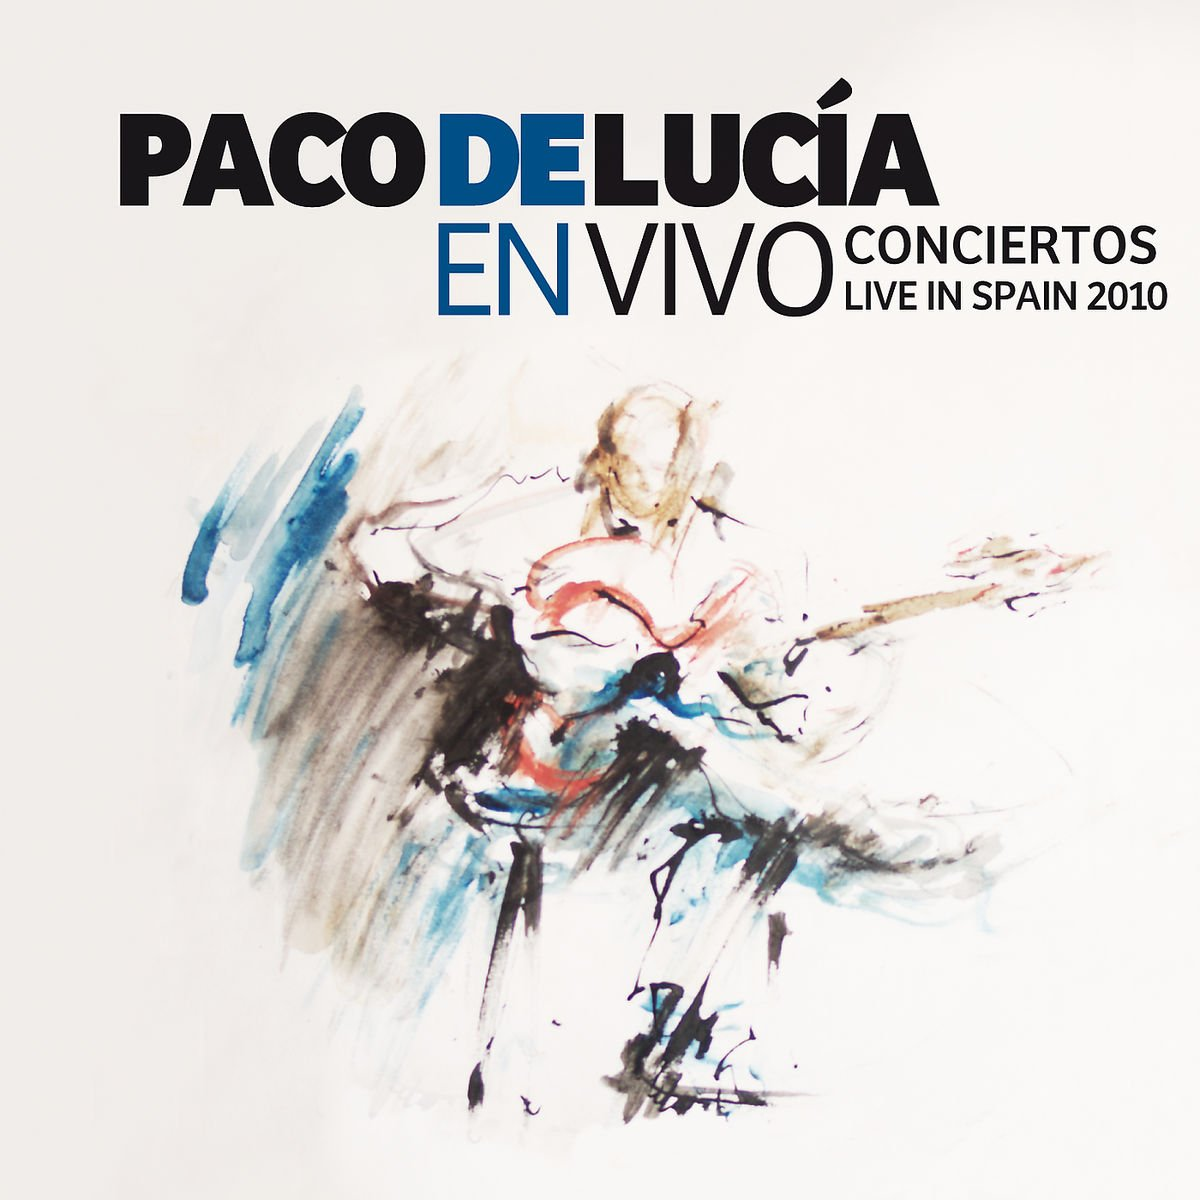 En Vivo Conciertos Live In Spain 2010 [2 CD]